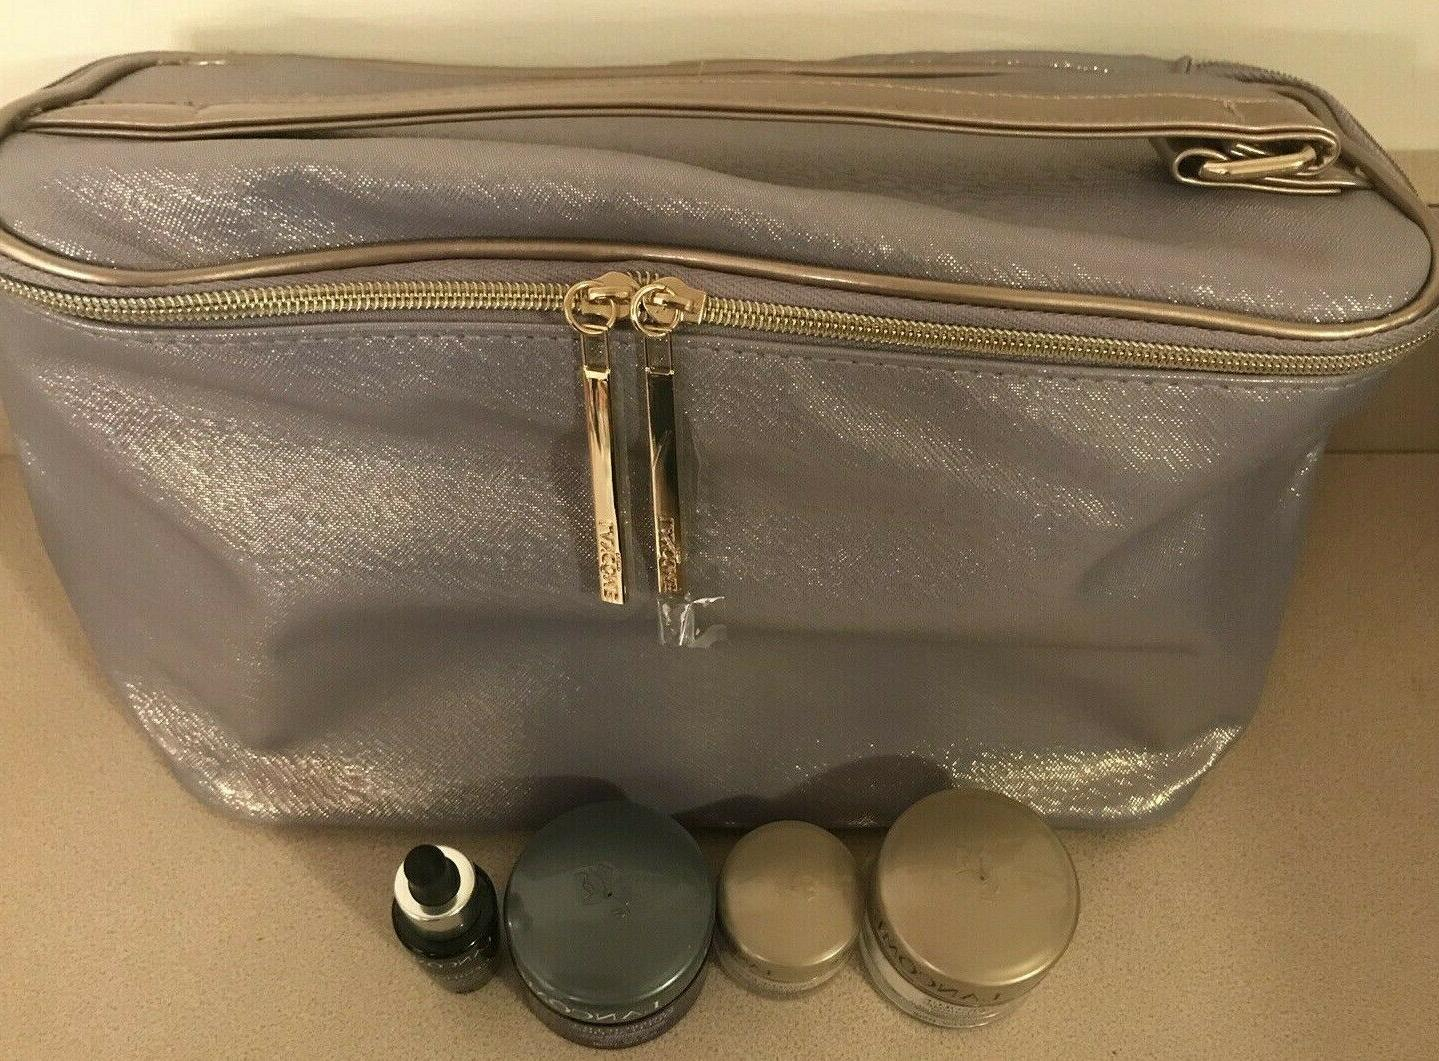 Lancome Absolue Day + Renergie Genifique Bag